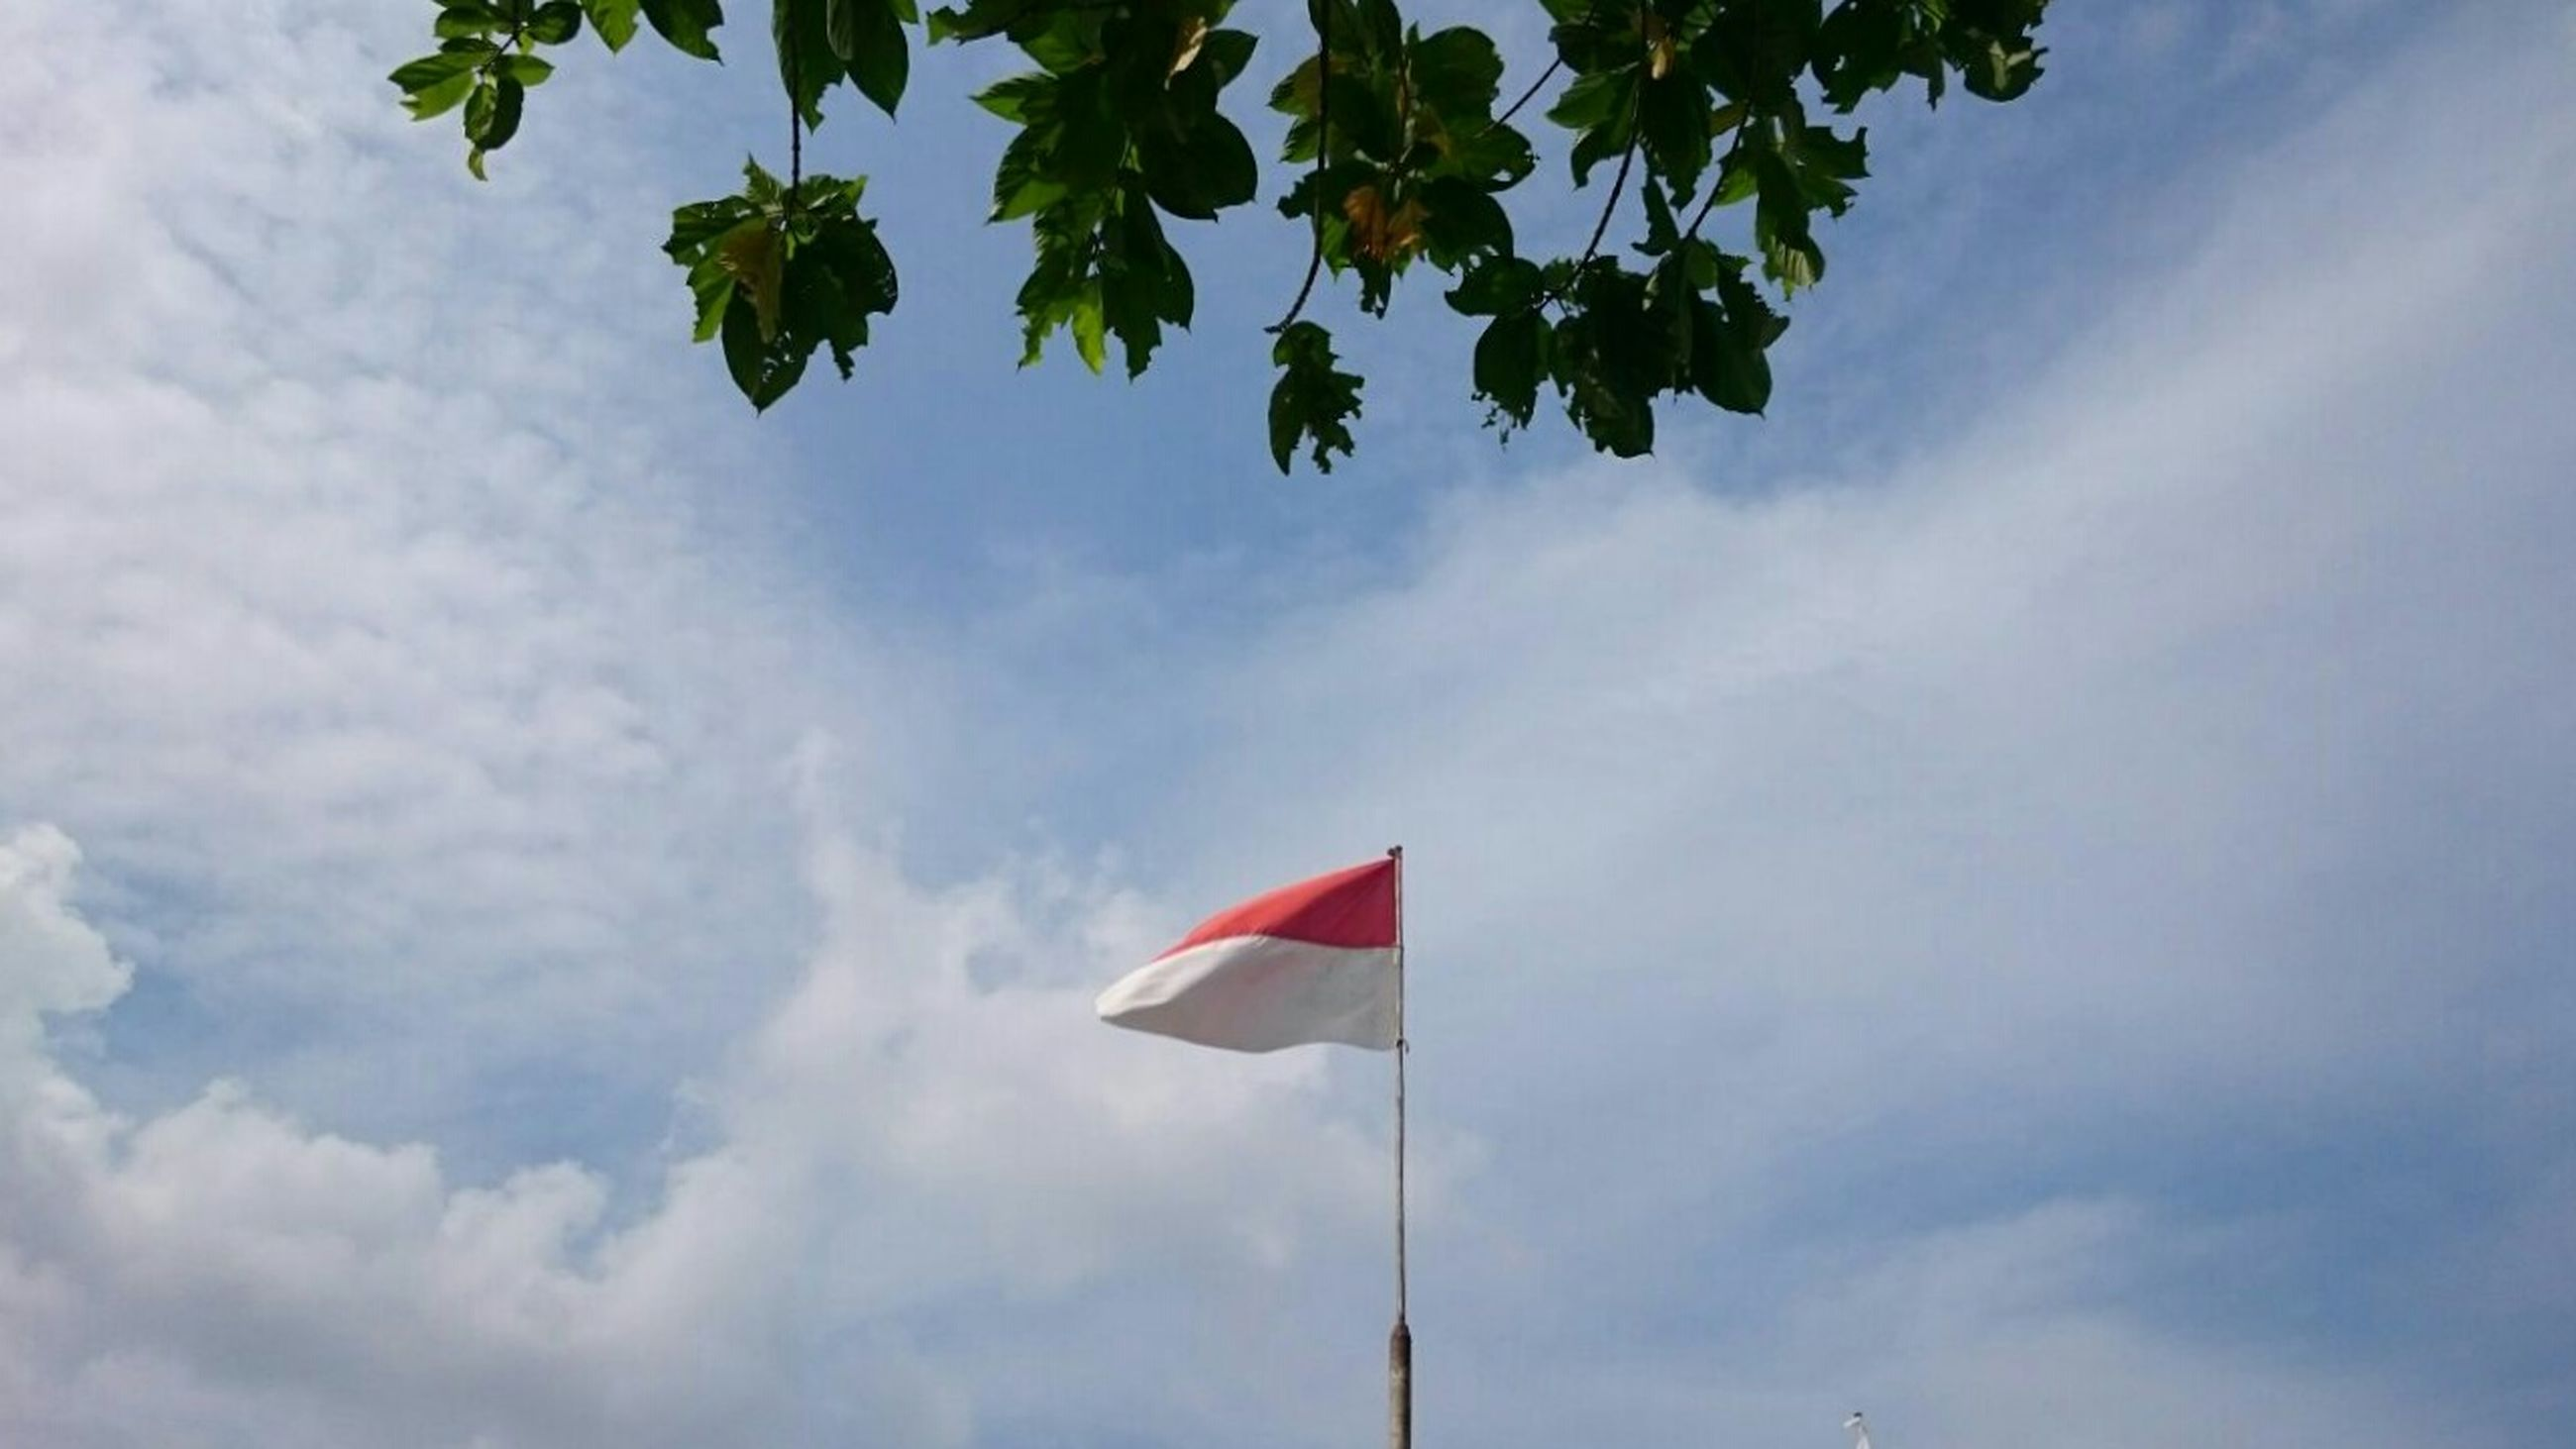 low angle view, flag, sky, patriotism, identity, national flag, cloud - sky, american flag, cloud, tree, cloudy, pole, red, wind, day, pride, no people, outdoors, nature, blue